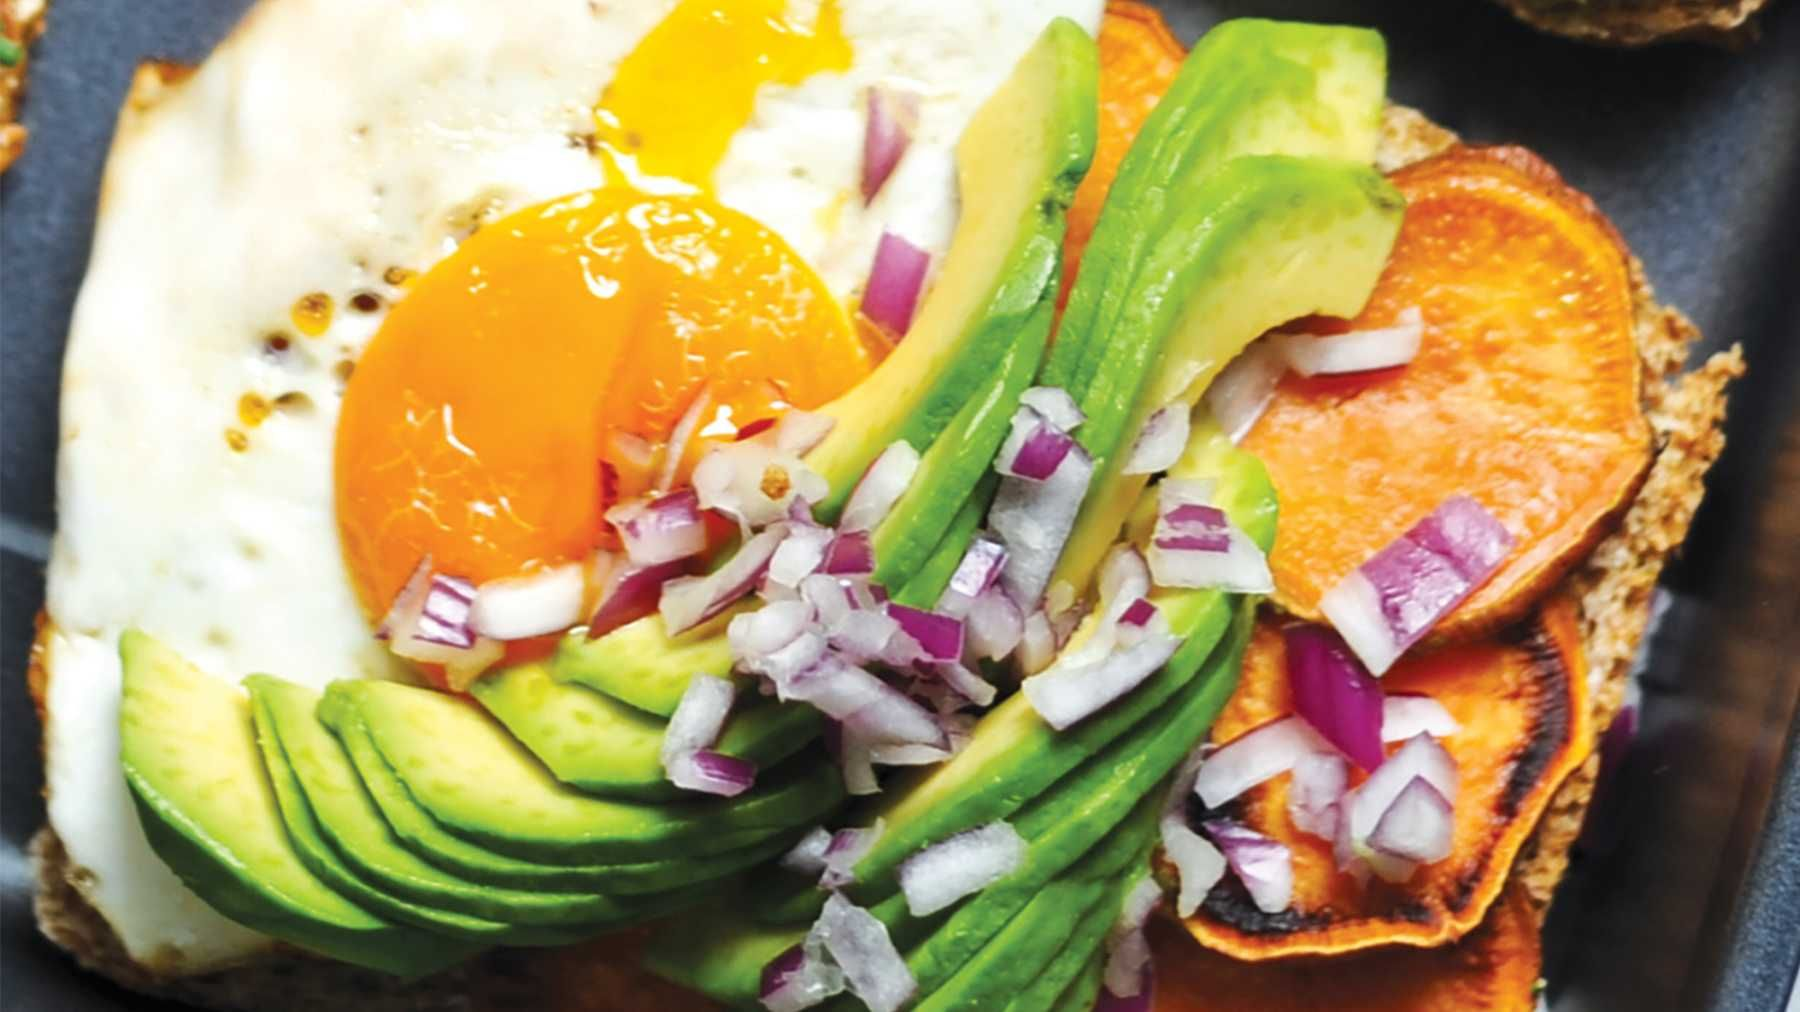 The Lumberjack: Toast with Sweet Potato, Egg & Avocado. Egg adds a protein boost while avocado acts as a healthy source of fats in this hearty toast recipe that is sure to please. Looking for a gluten-free option? CE has got you covered!